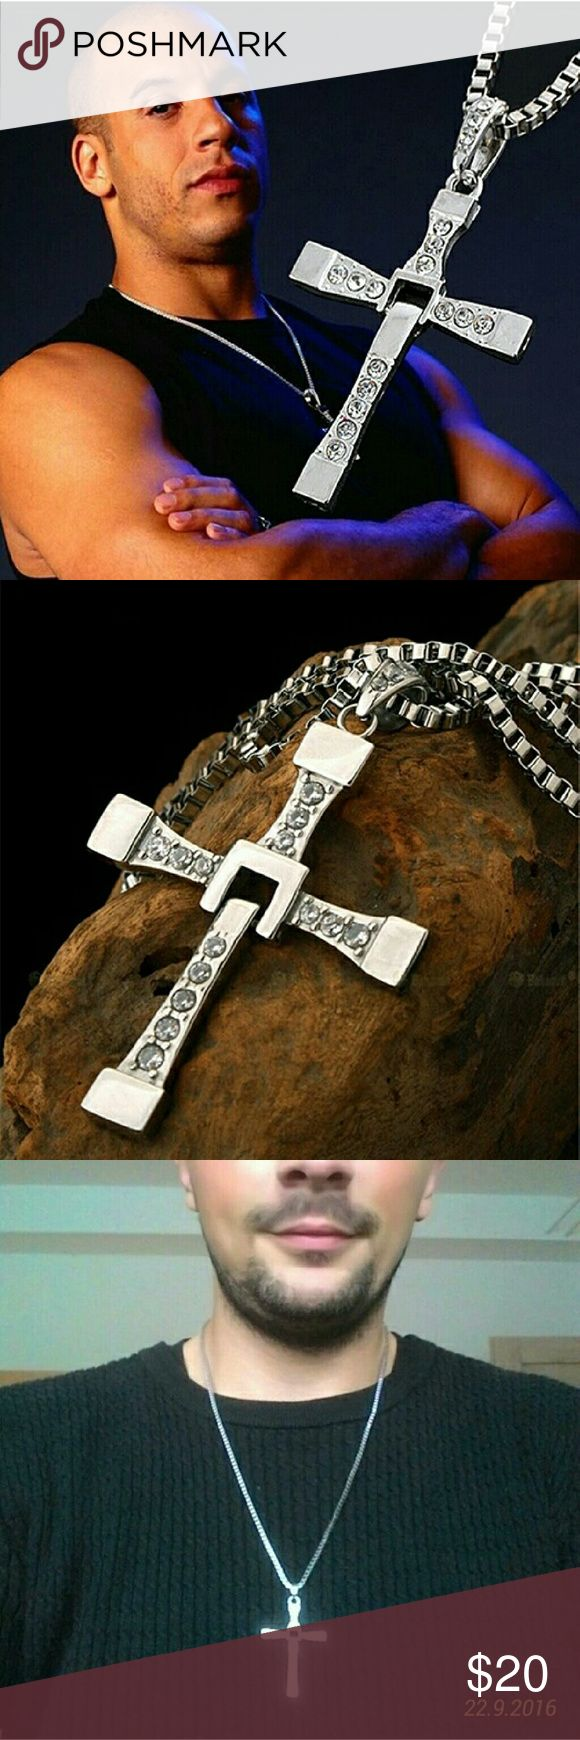 Long Chain New Fast and Furious Seven Dom Long Chain New Fast and Furious Seven Dominic Toretto / Vin Diesel Silver Plated Cross Necklace for Men Jewelry Necklaces